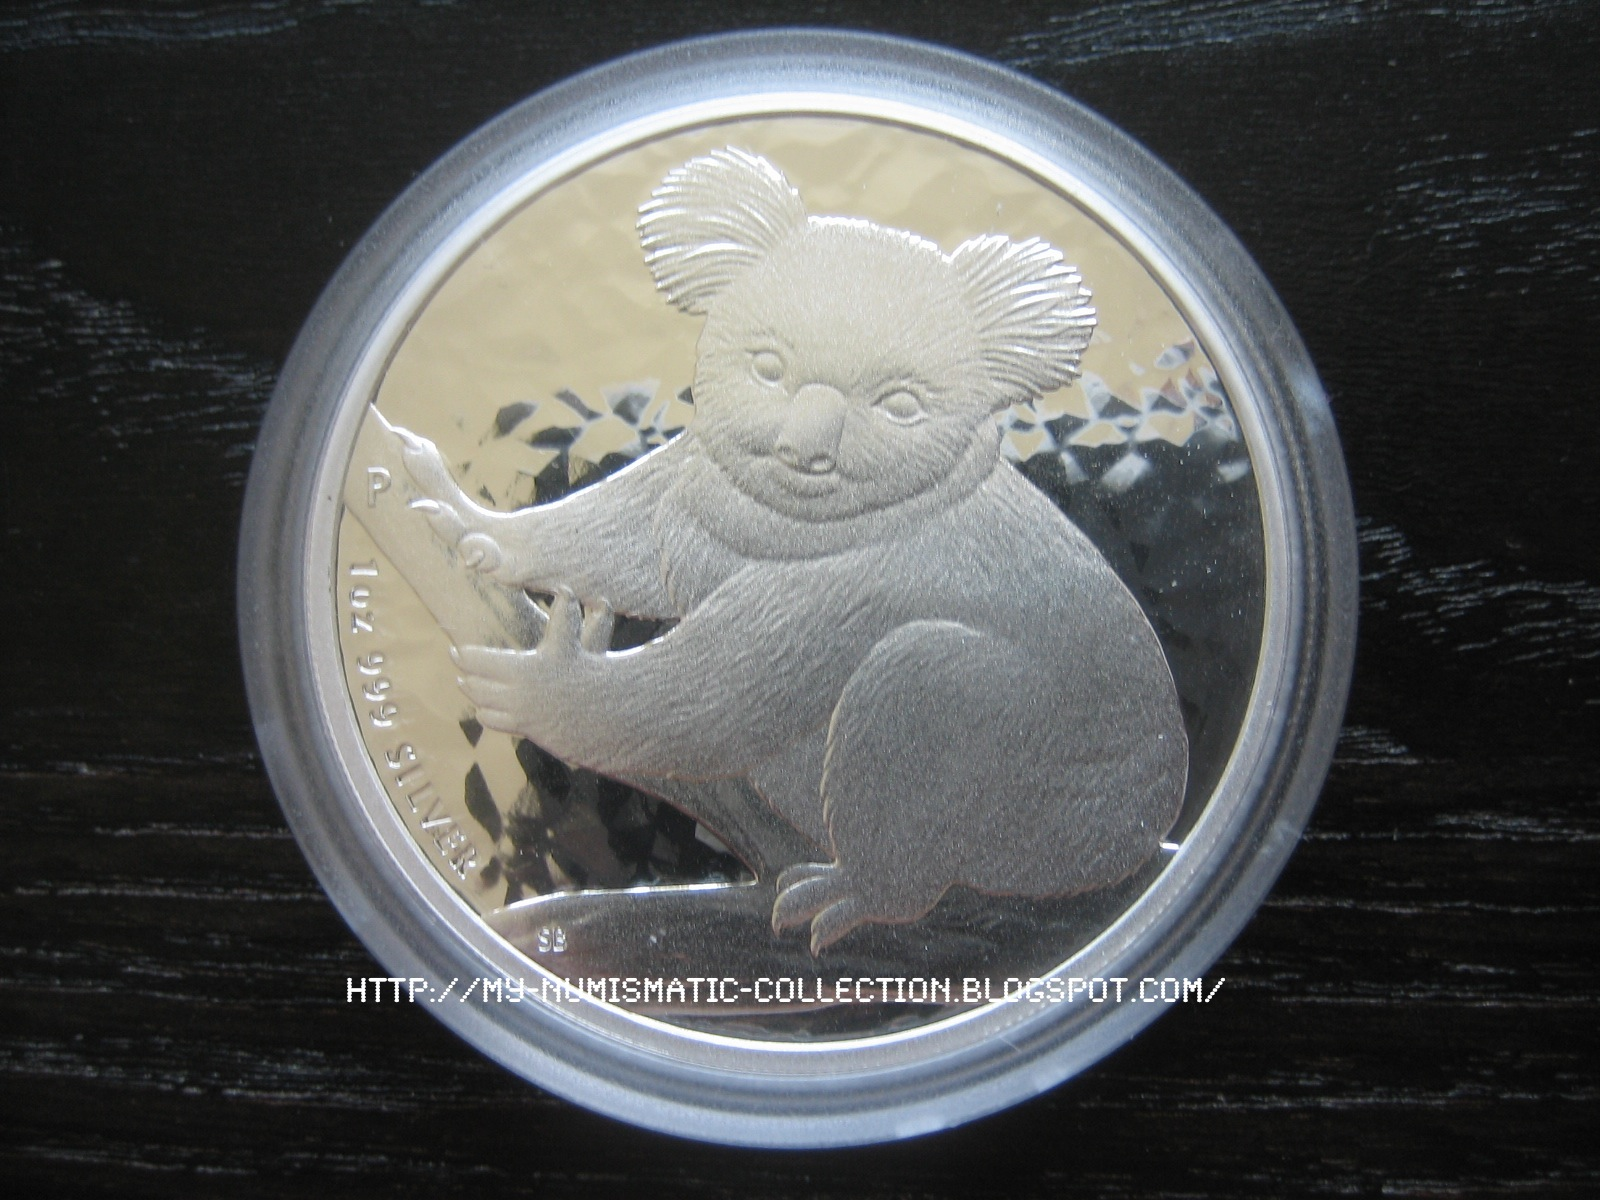 Numismatic Collection 2009 Australian Silver Koala